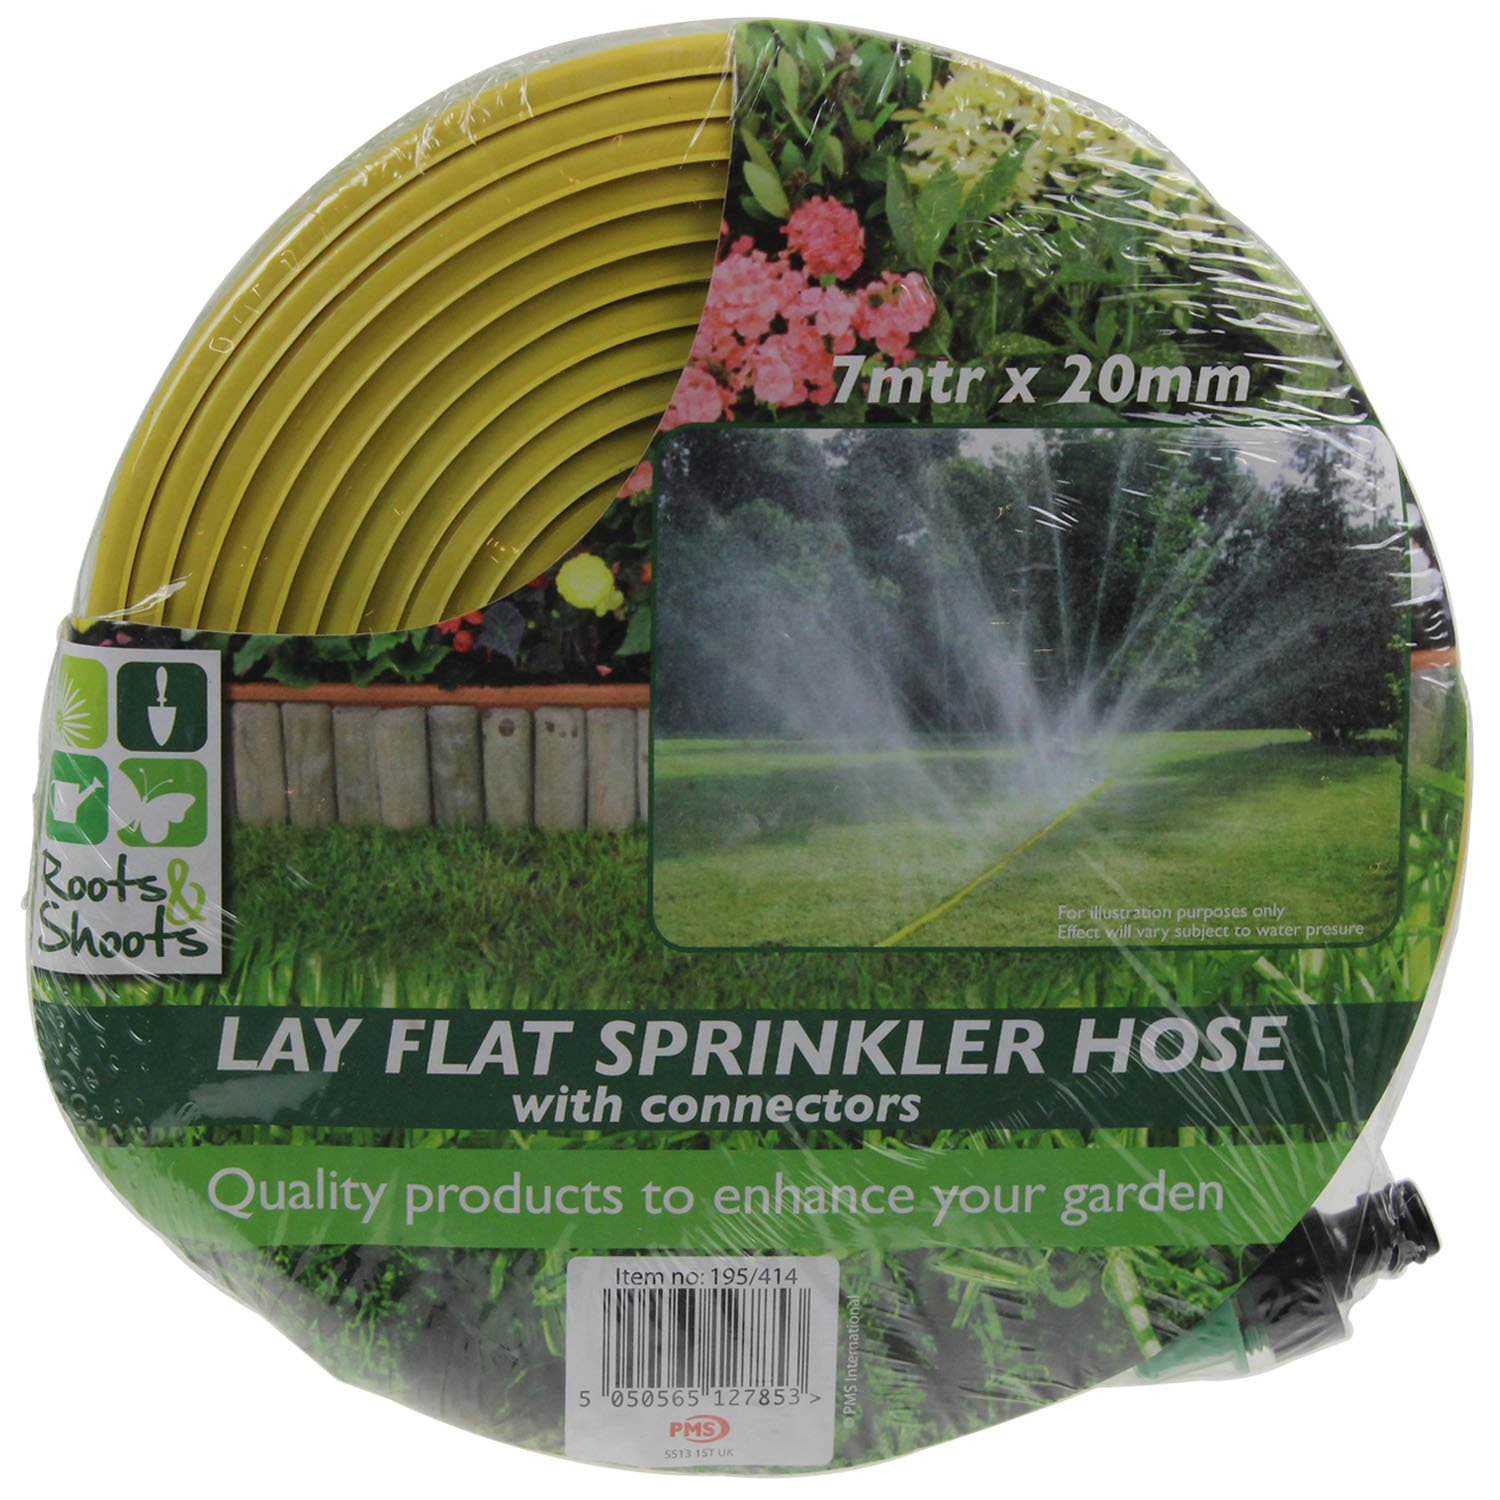 7m x 20mm Lay Flat Sprinkler Hose With Connectors Roots & Shoots